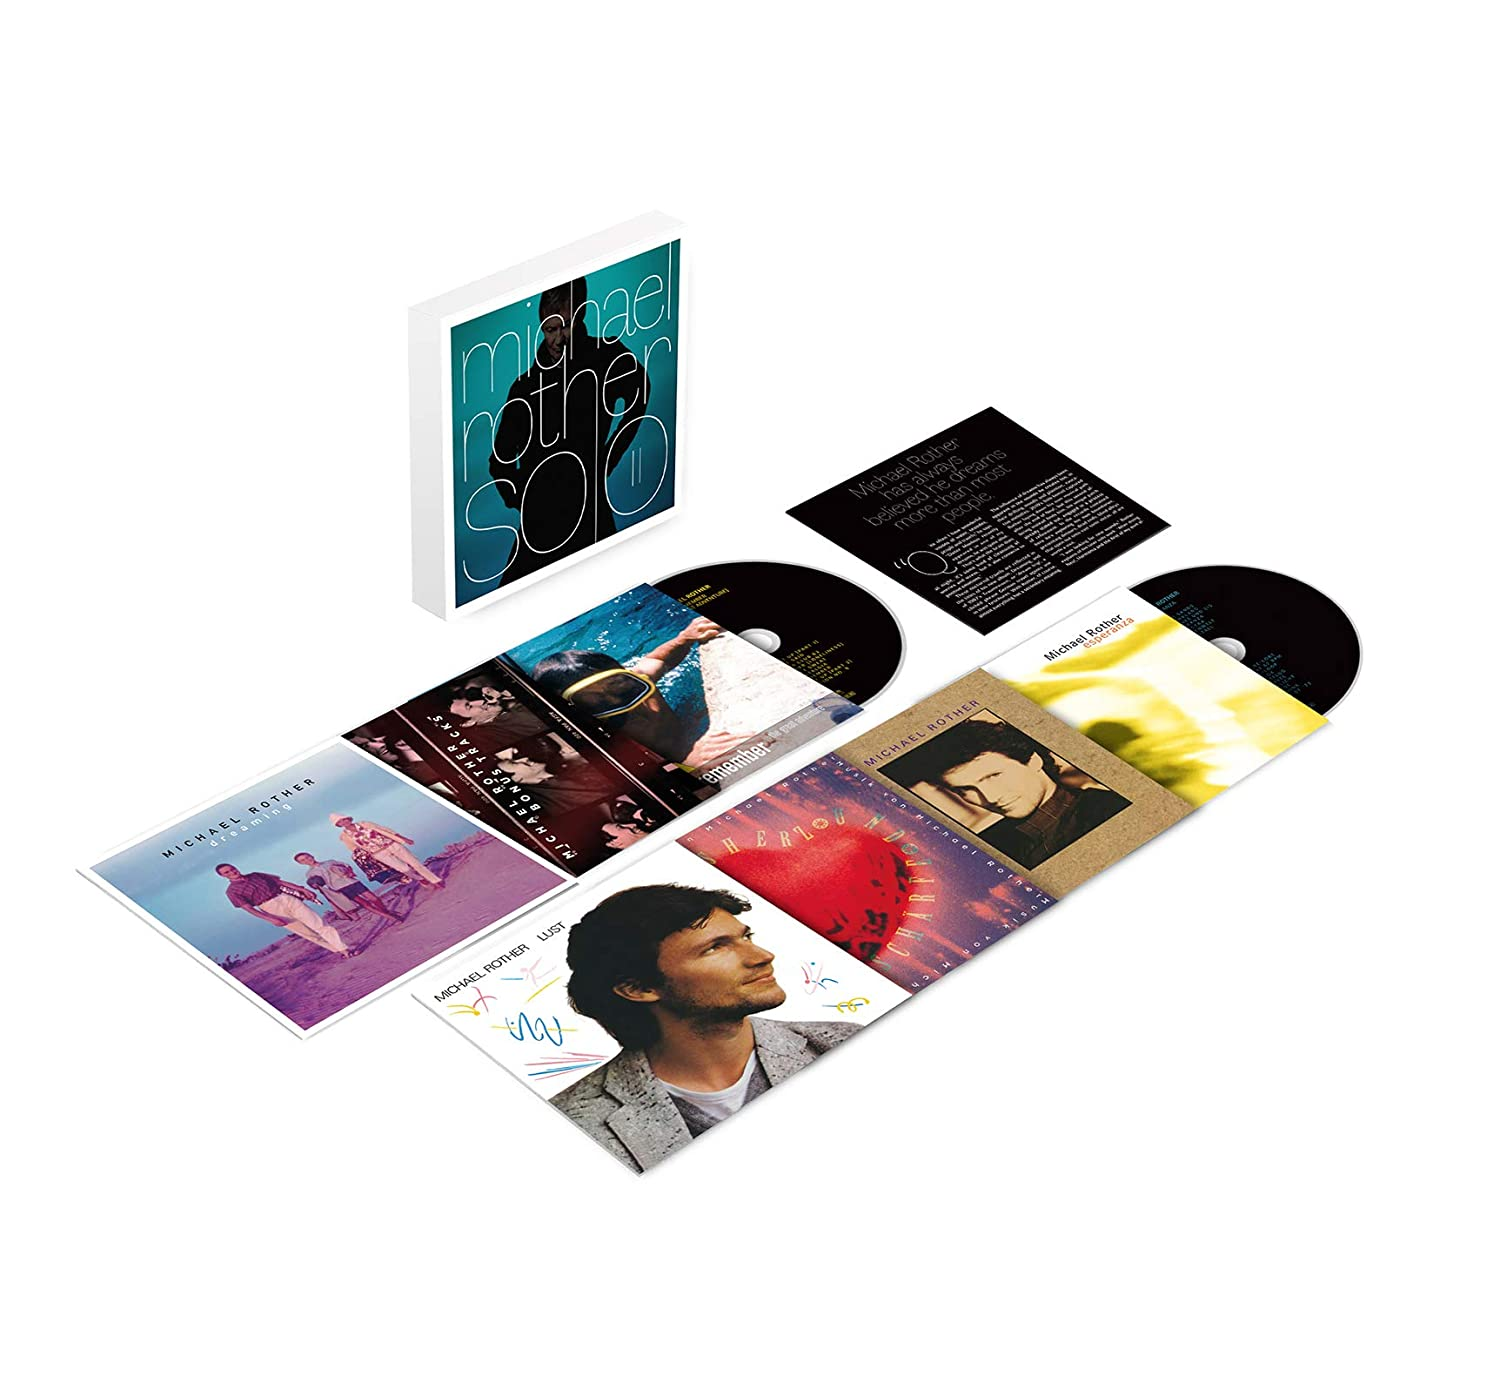 Michael Rother - Solo II [Limited Edition 7CD Box Set]